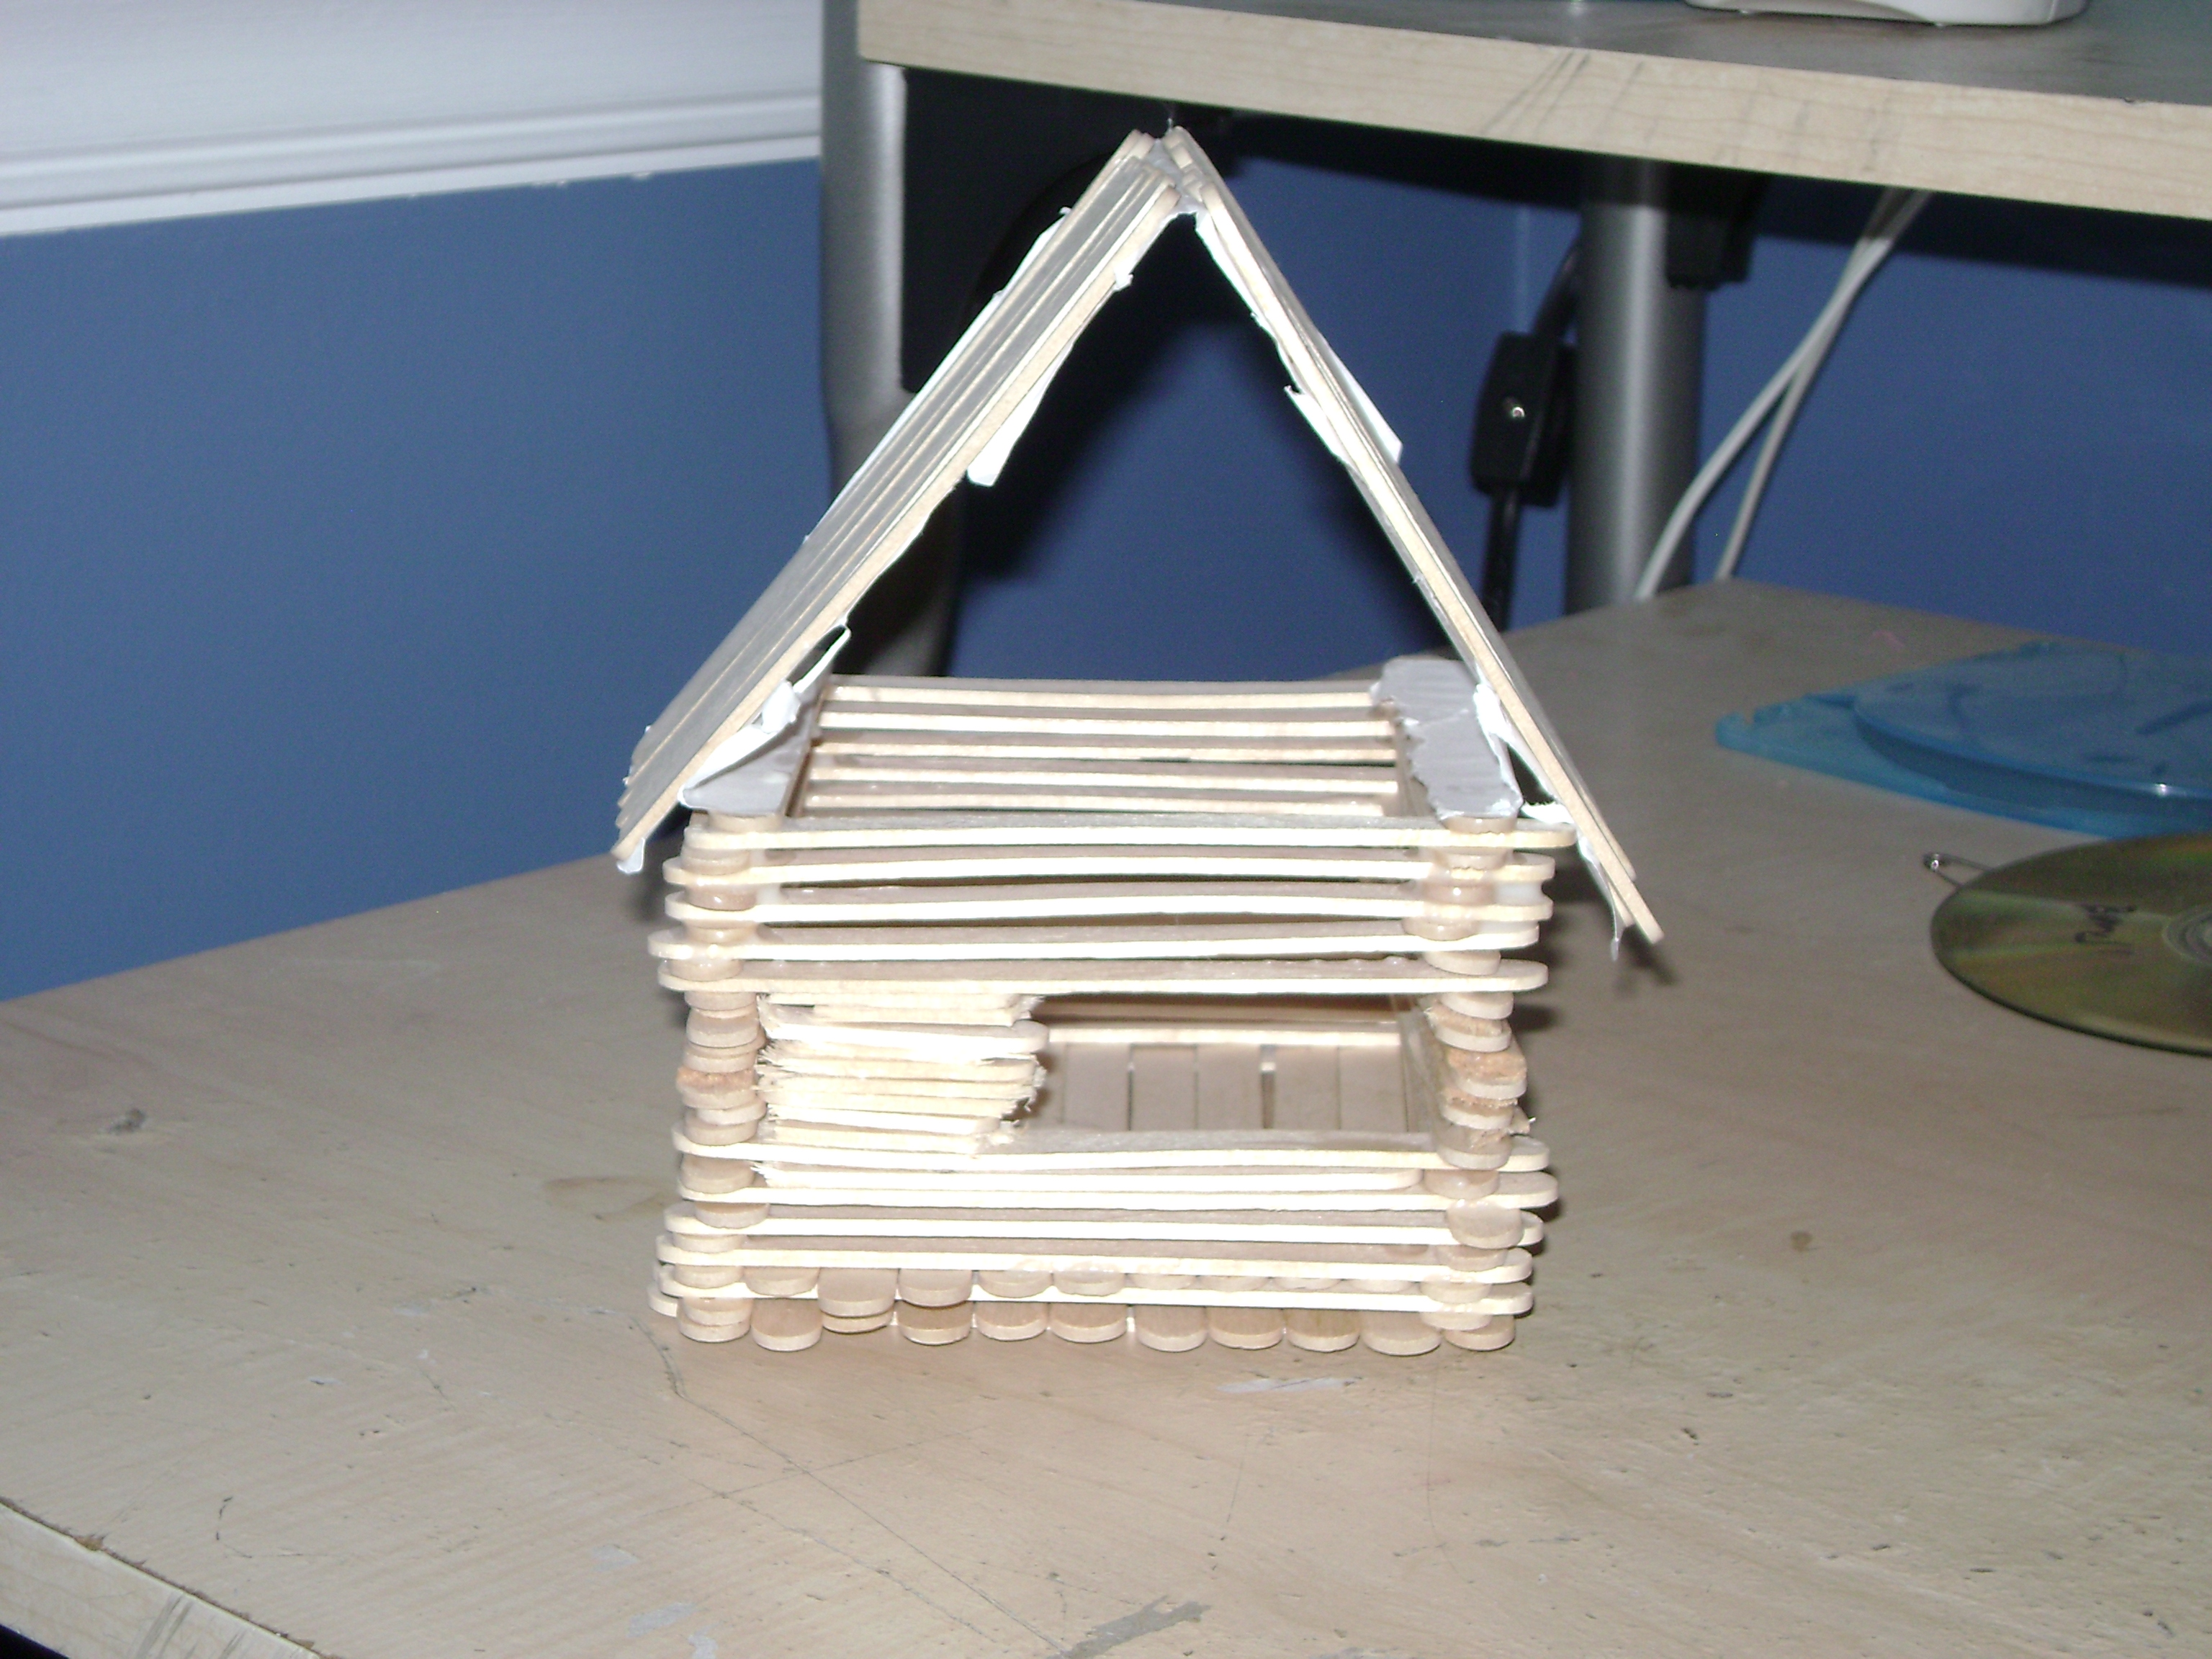 Arts and crafts sticks - House Of Popsicle Sticks